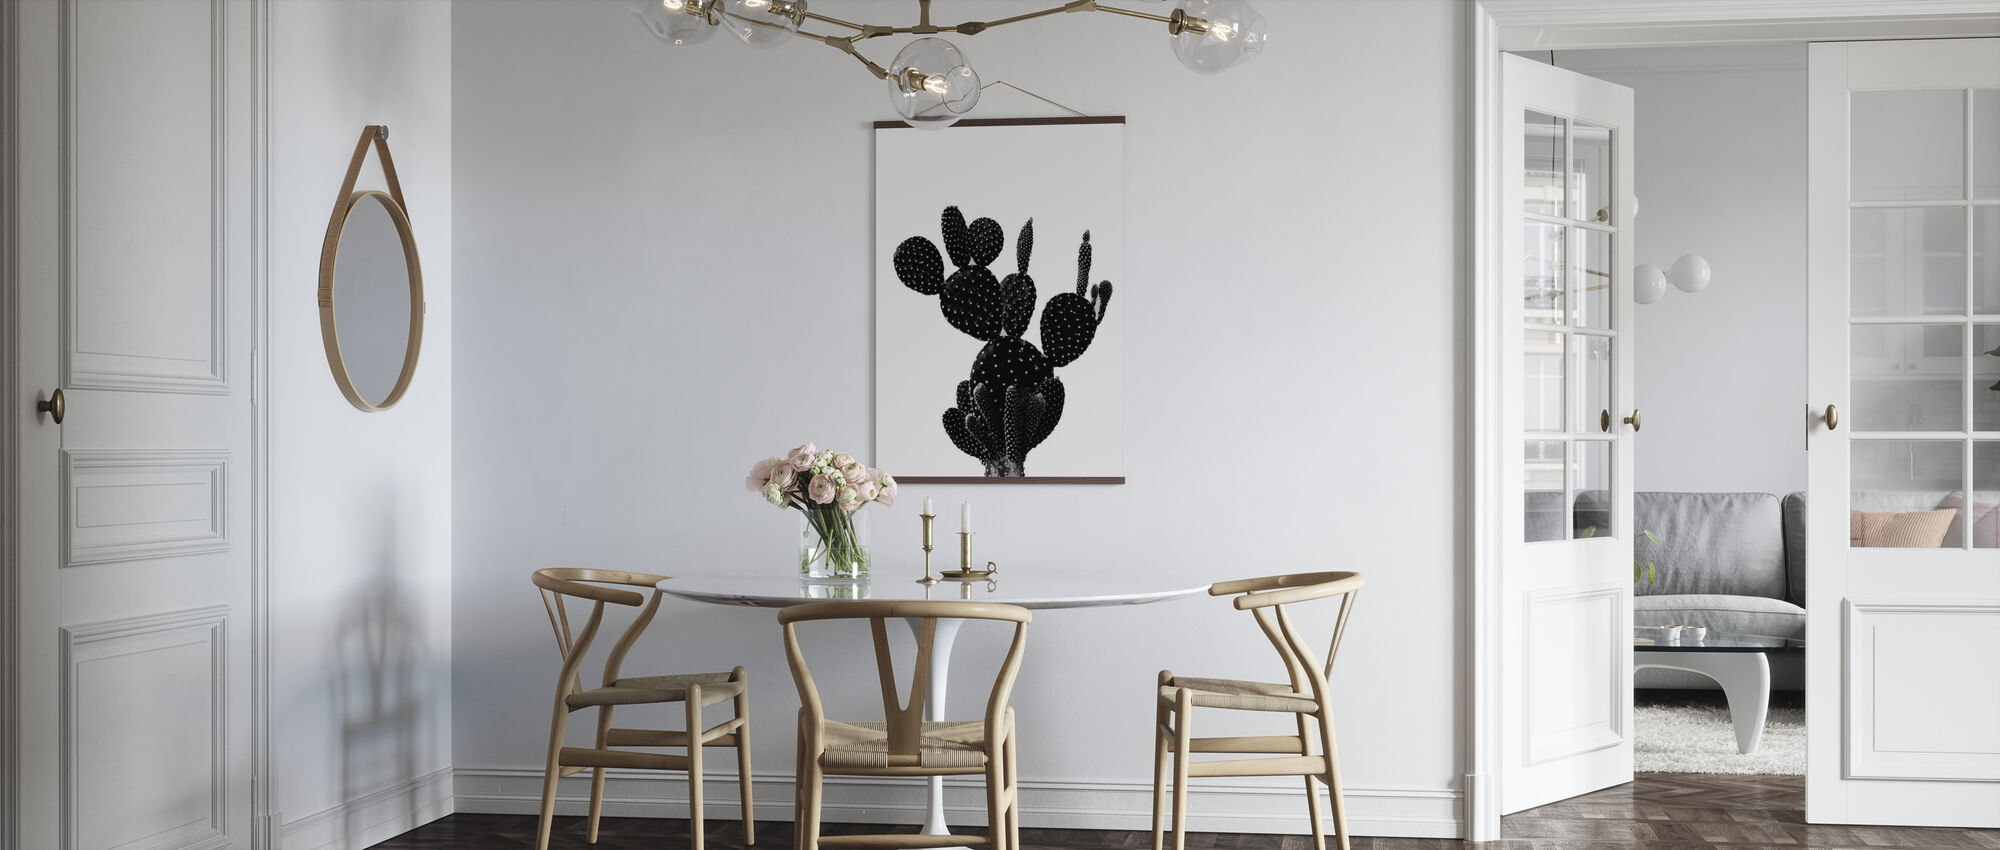 Black Cactus - Poster - Kitchen